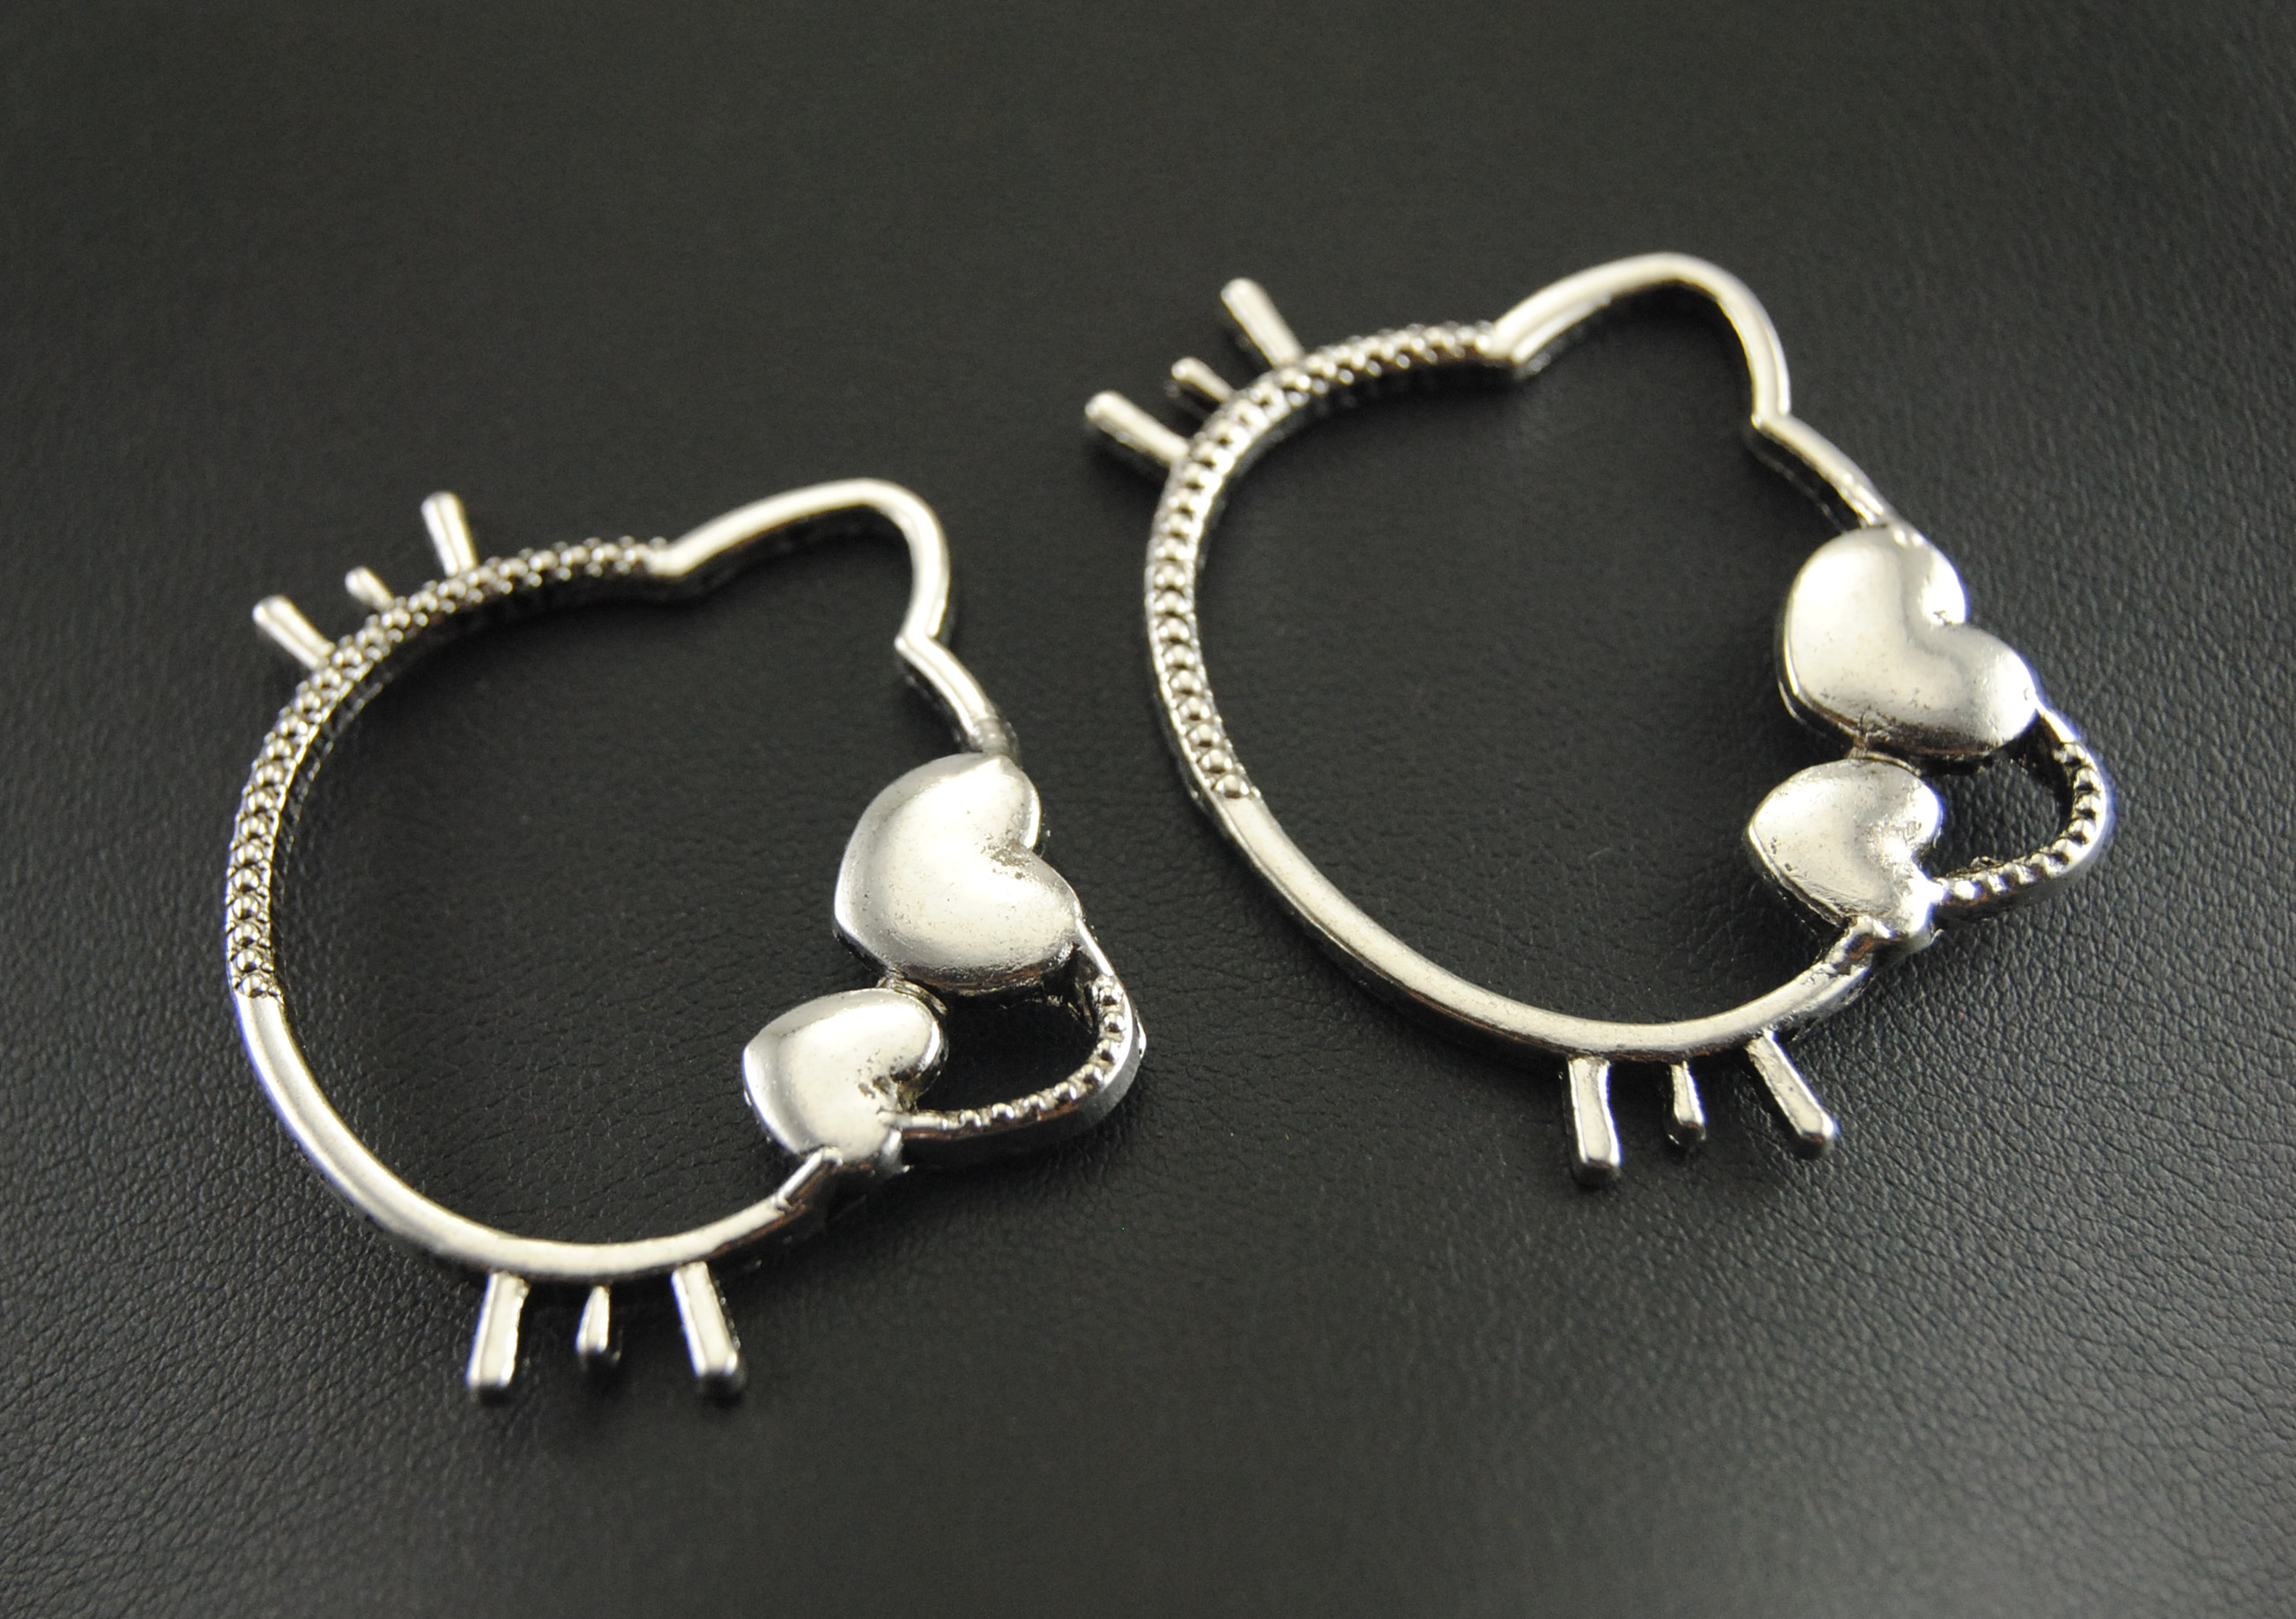 5 Pcs  Silver Color Kitty Cat Charm Connectors  Jewelry  Making DIY Handmade Craft  45x35mm A347